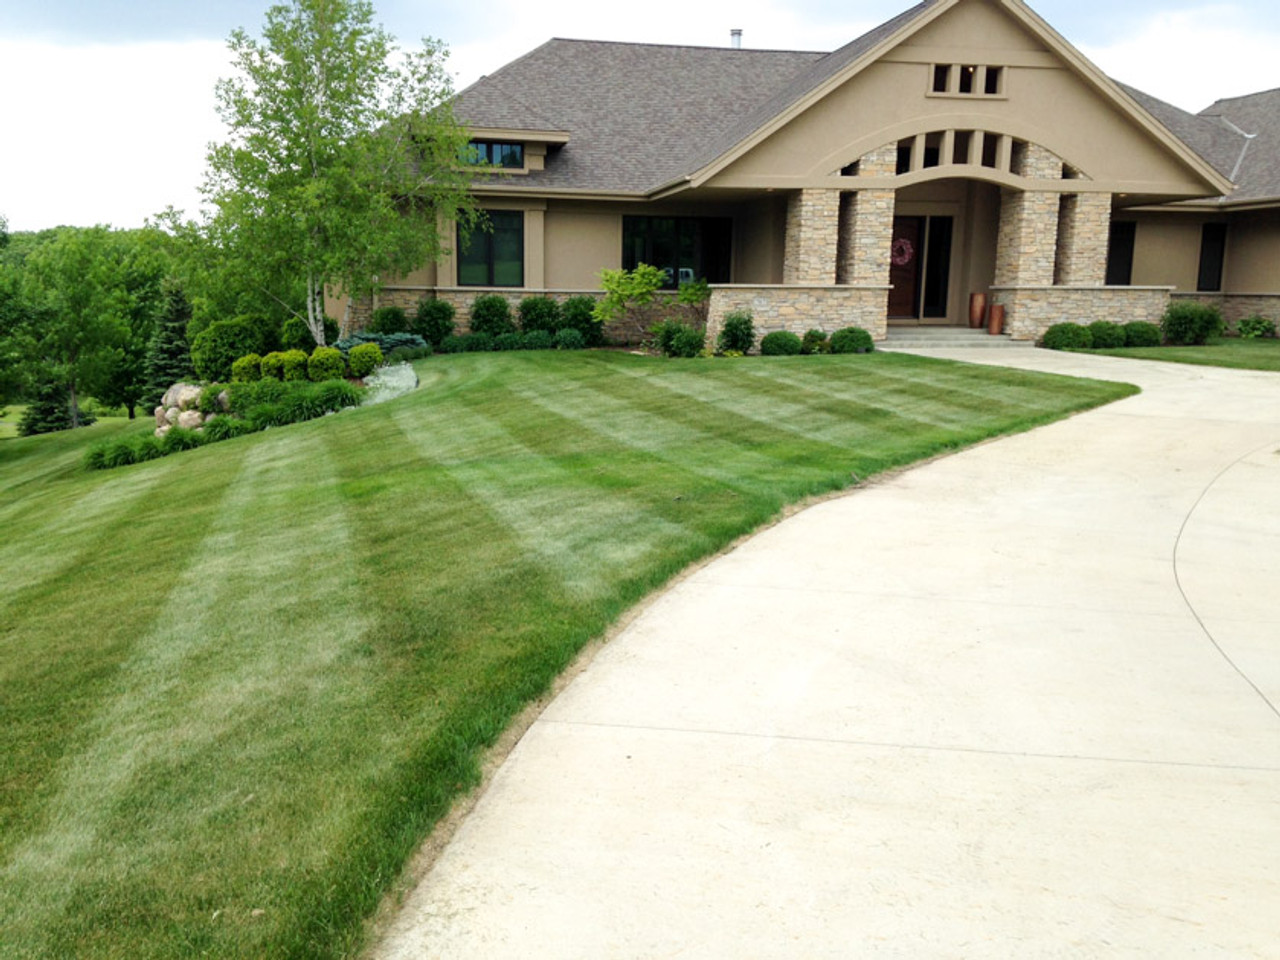 Lawn Stripes with John Deere 737